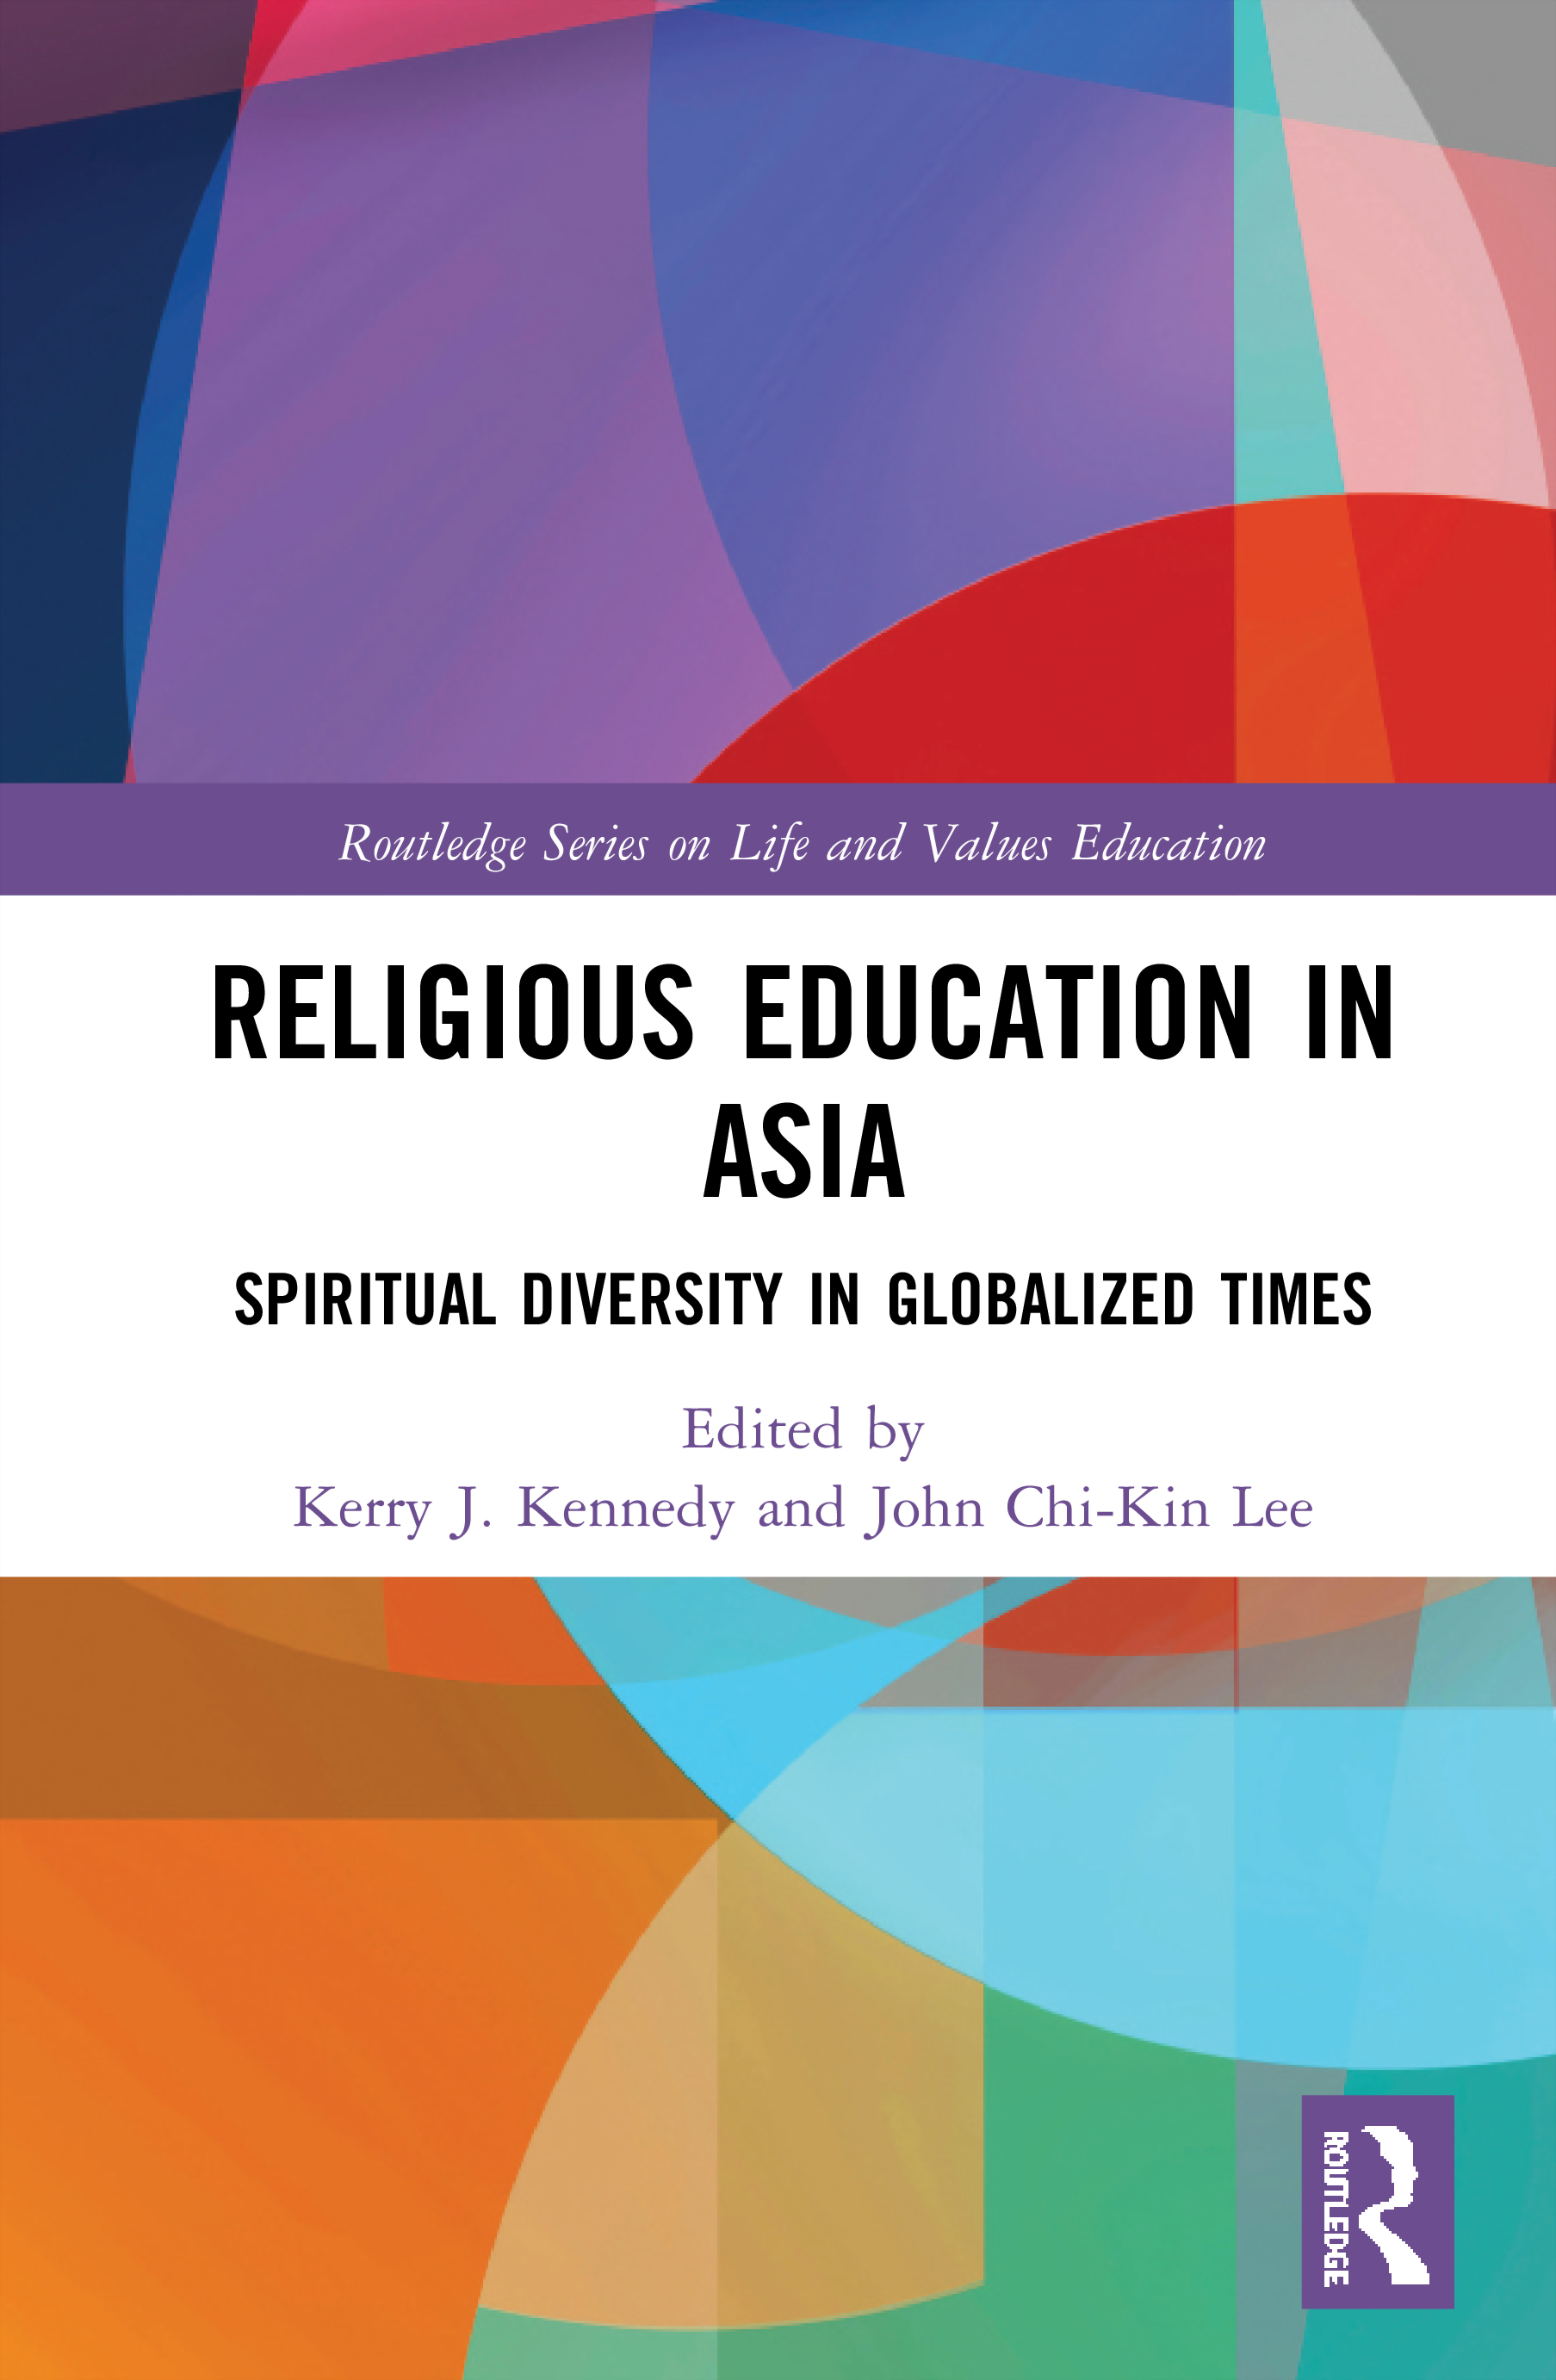 Religious Education in Asia: Spiritual Diversity in Globalized Times book cover